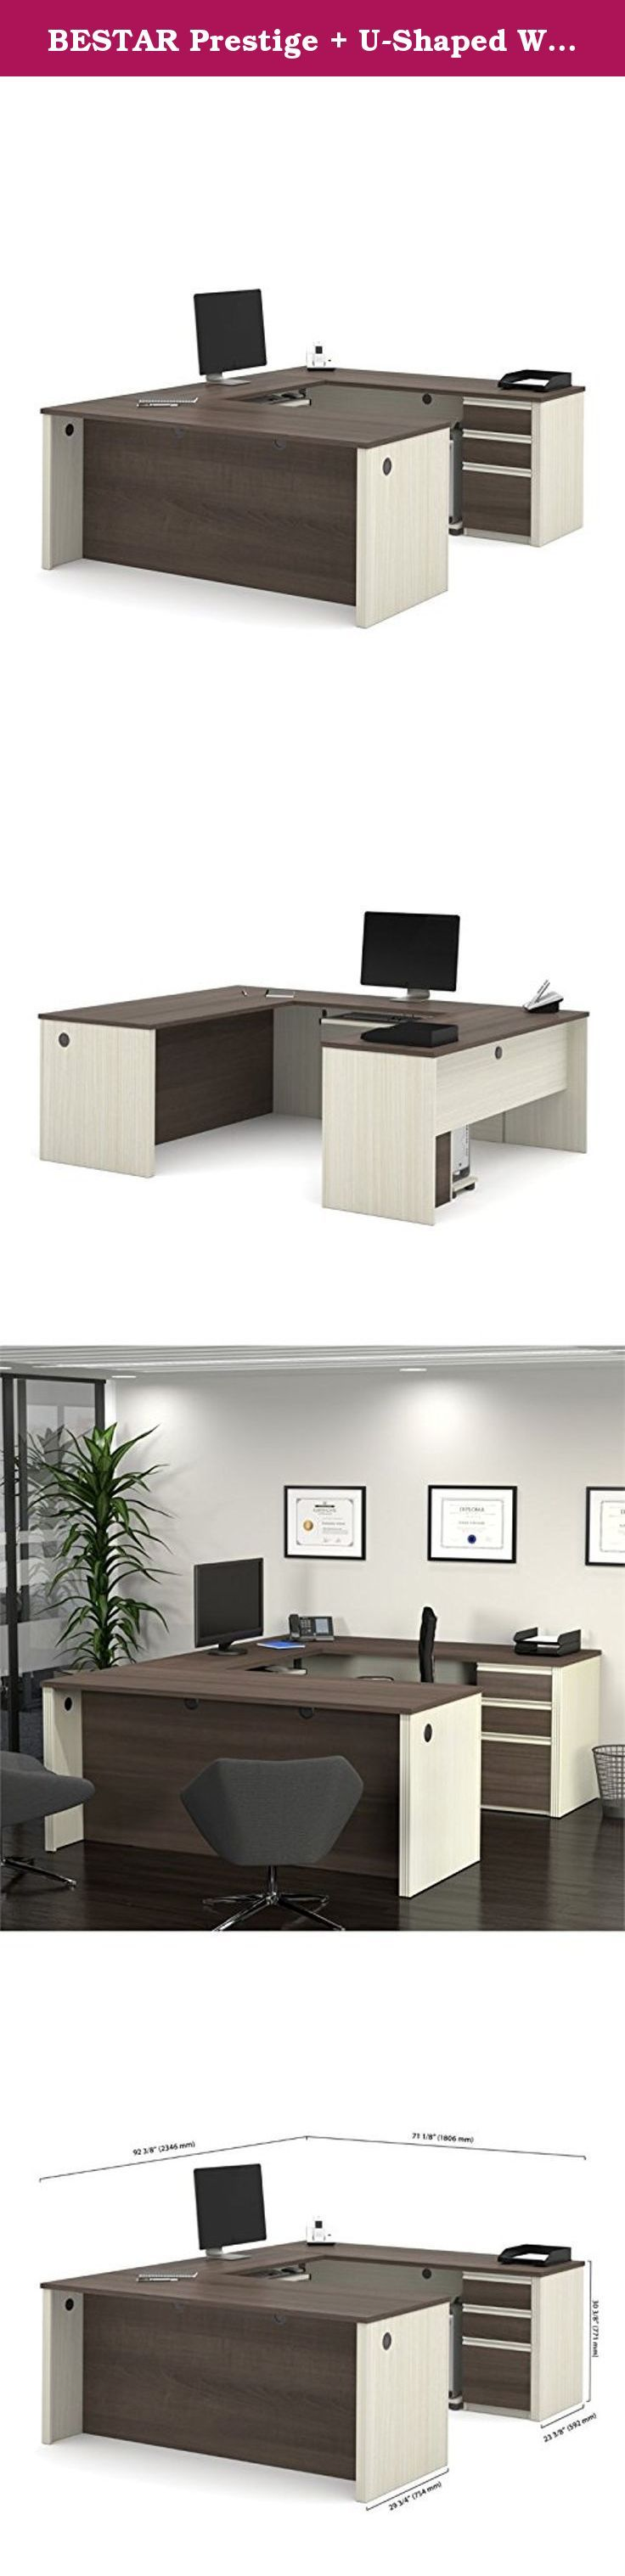 BESTAR Prestige + U-Shaped Workstation Including 1 Pedestal. If you need a large, durable work surface, look no further than the BESTAR Prestige + U-Shaped Workstation Including 1 Pedestal. The U-shaped design features a commercial-grade melamine finish that resists scratches, stains, and wear, and also includes an impact-resistant PVC edge. Below, the pedestal features two utility drawers and one legal/letter file drawer. All drawers and the pull-out keyboard tray feature smooth...